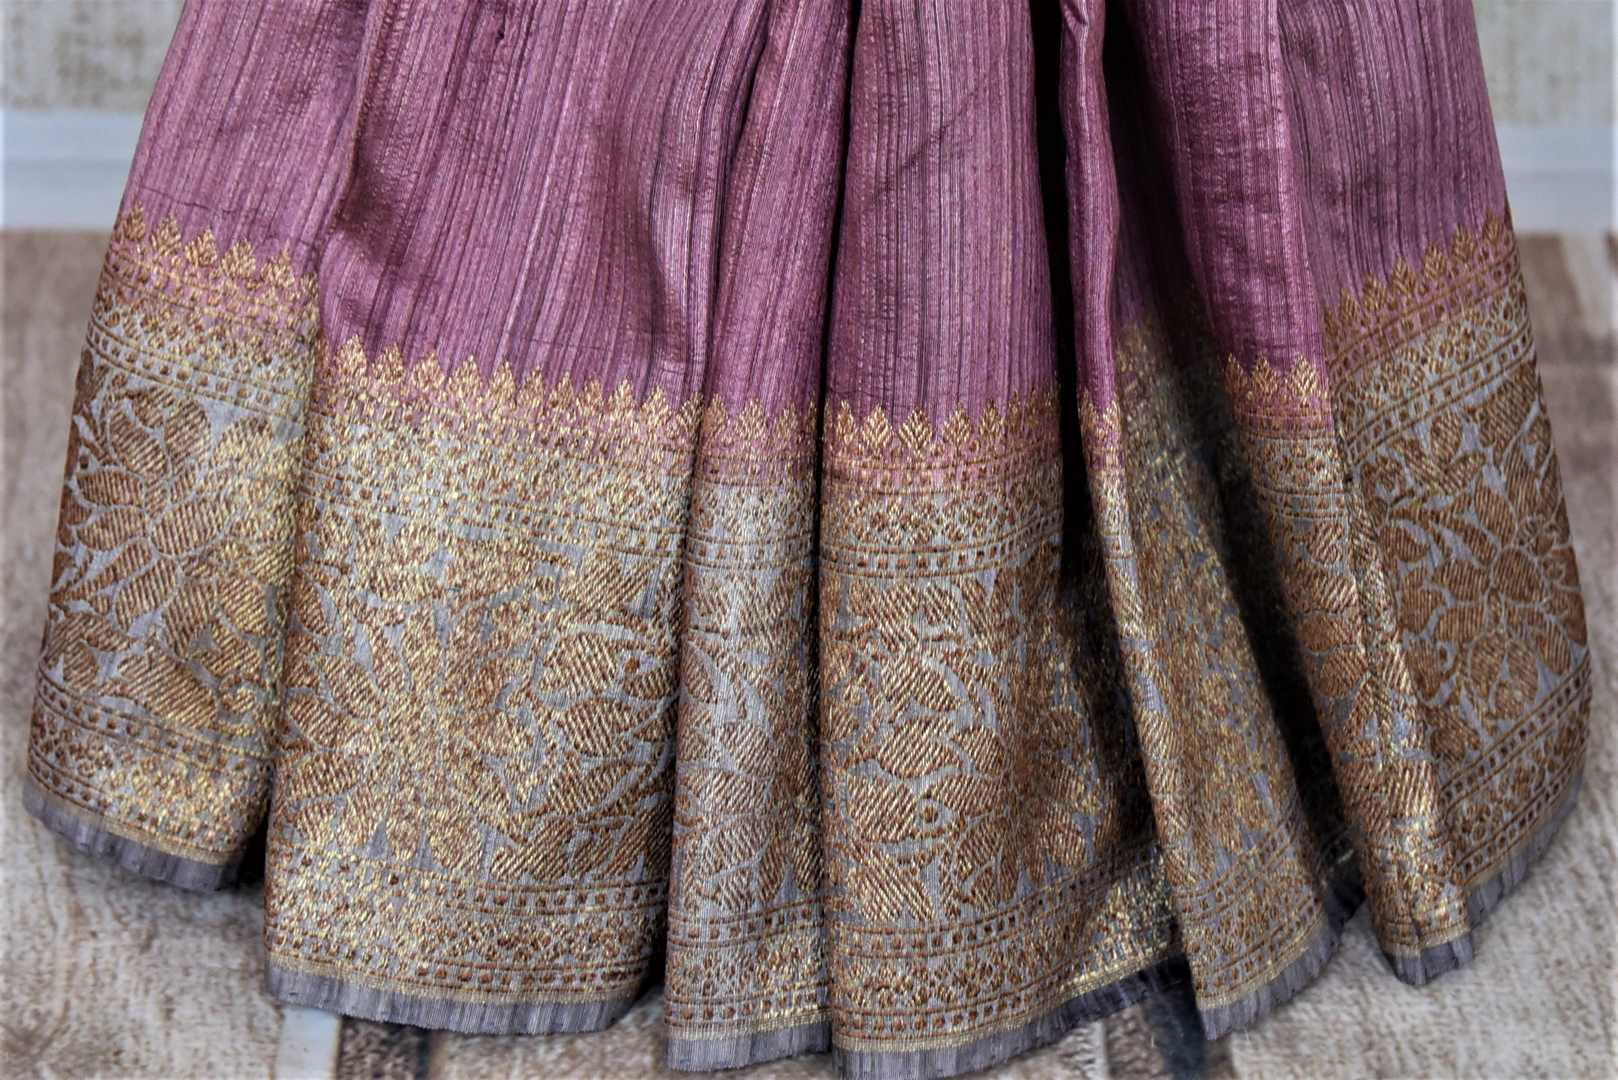 Buy stunning mauve tussar Banarsi saree online in USA with grey antique zari border. Choose tasteful handloom sarees for special occasions from Pure Elegance. Our exclusive Indian fashion store has a myriad of exquisite pure silk saris, tussar sarees, Banarasi sarees for Indian women in USA.-pleats